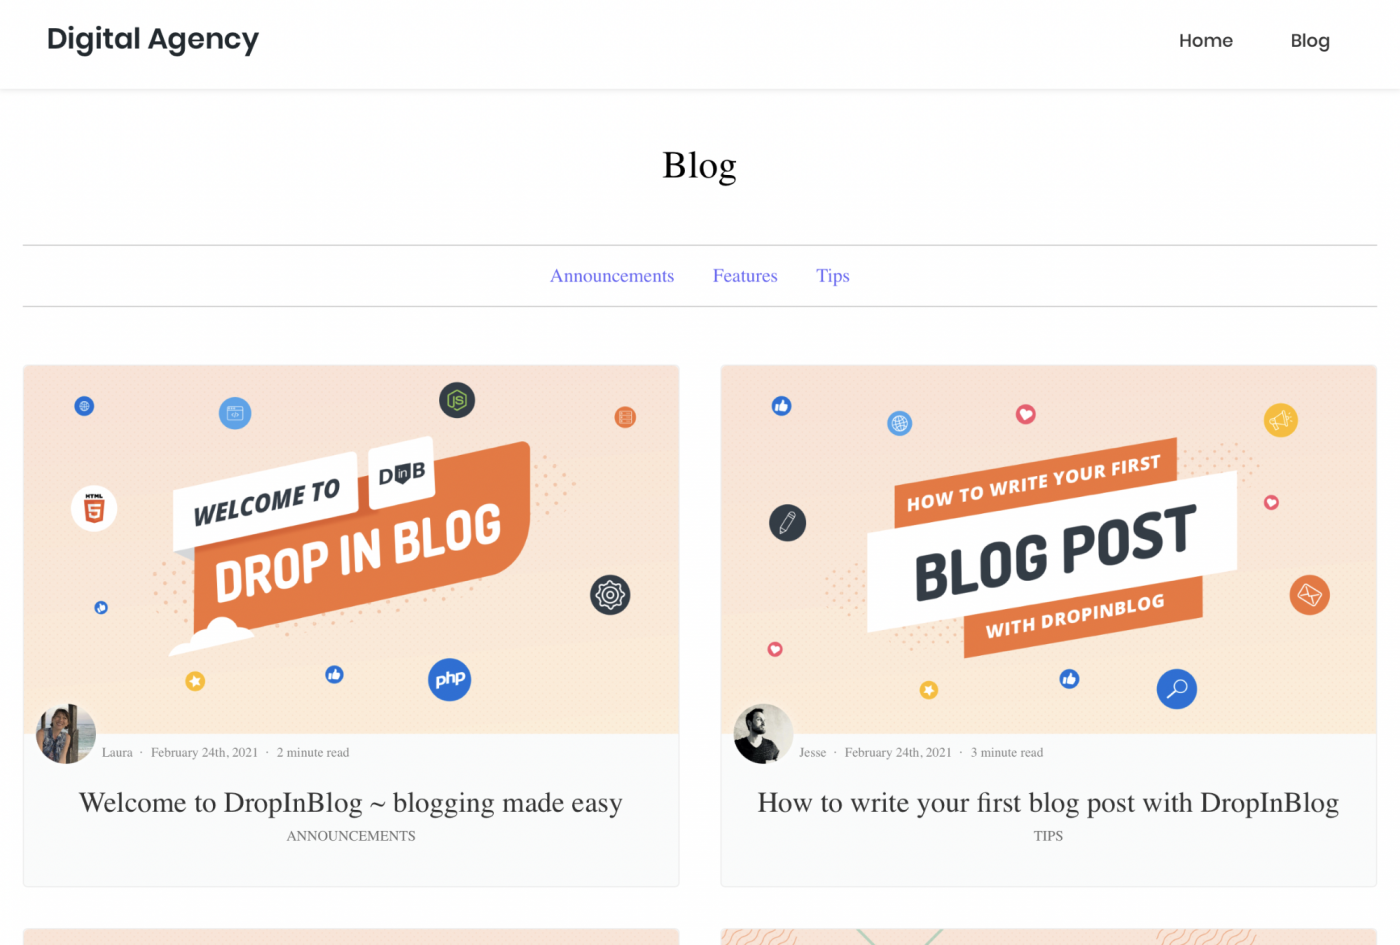 The published blog on a blog page within the final website